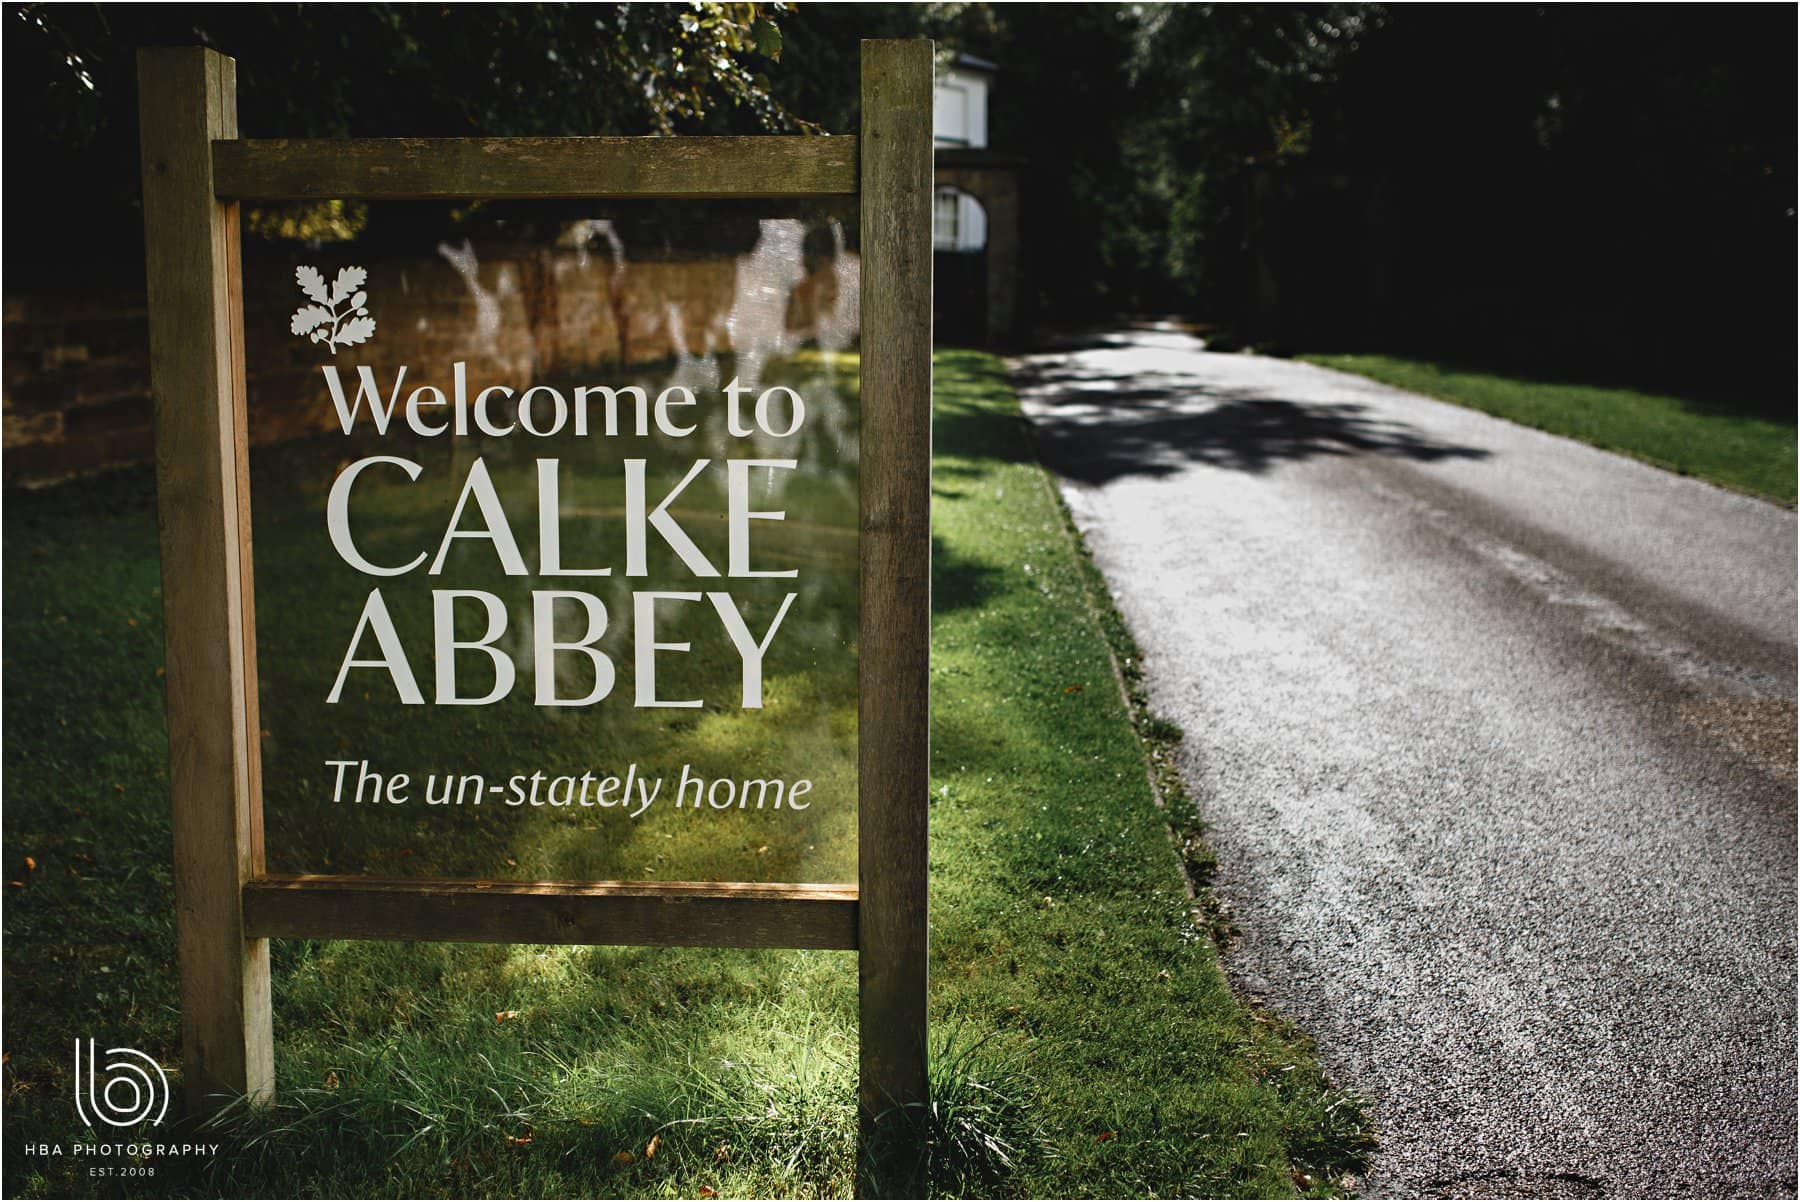 Welcome to Calke Abbey sign